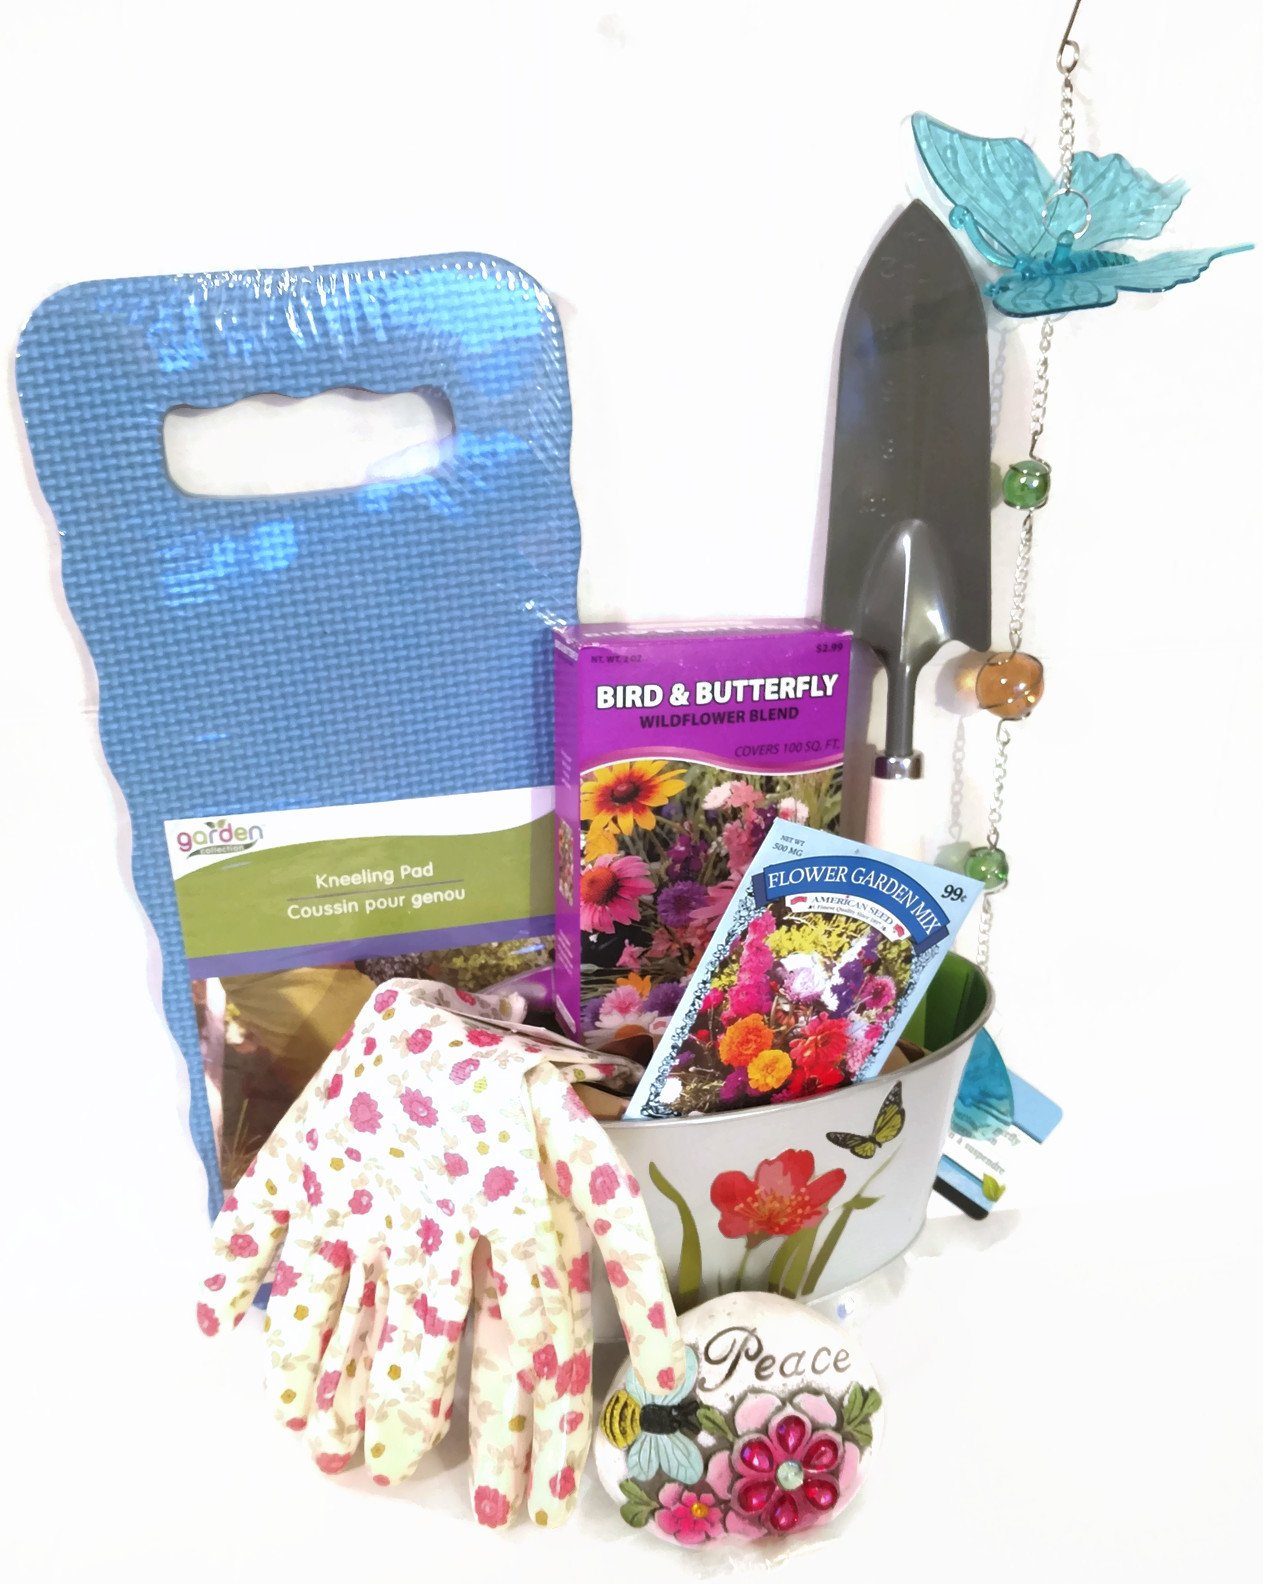 GyPsy BaRn ChiX Mother Birthday Gift Garden Set - 9 Piece Set Includes Gift Bag